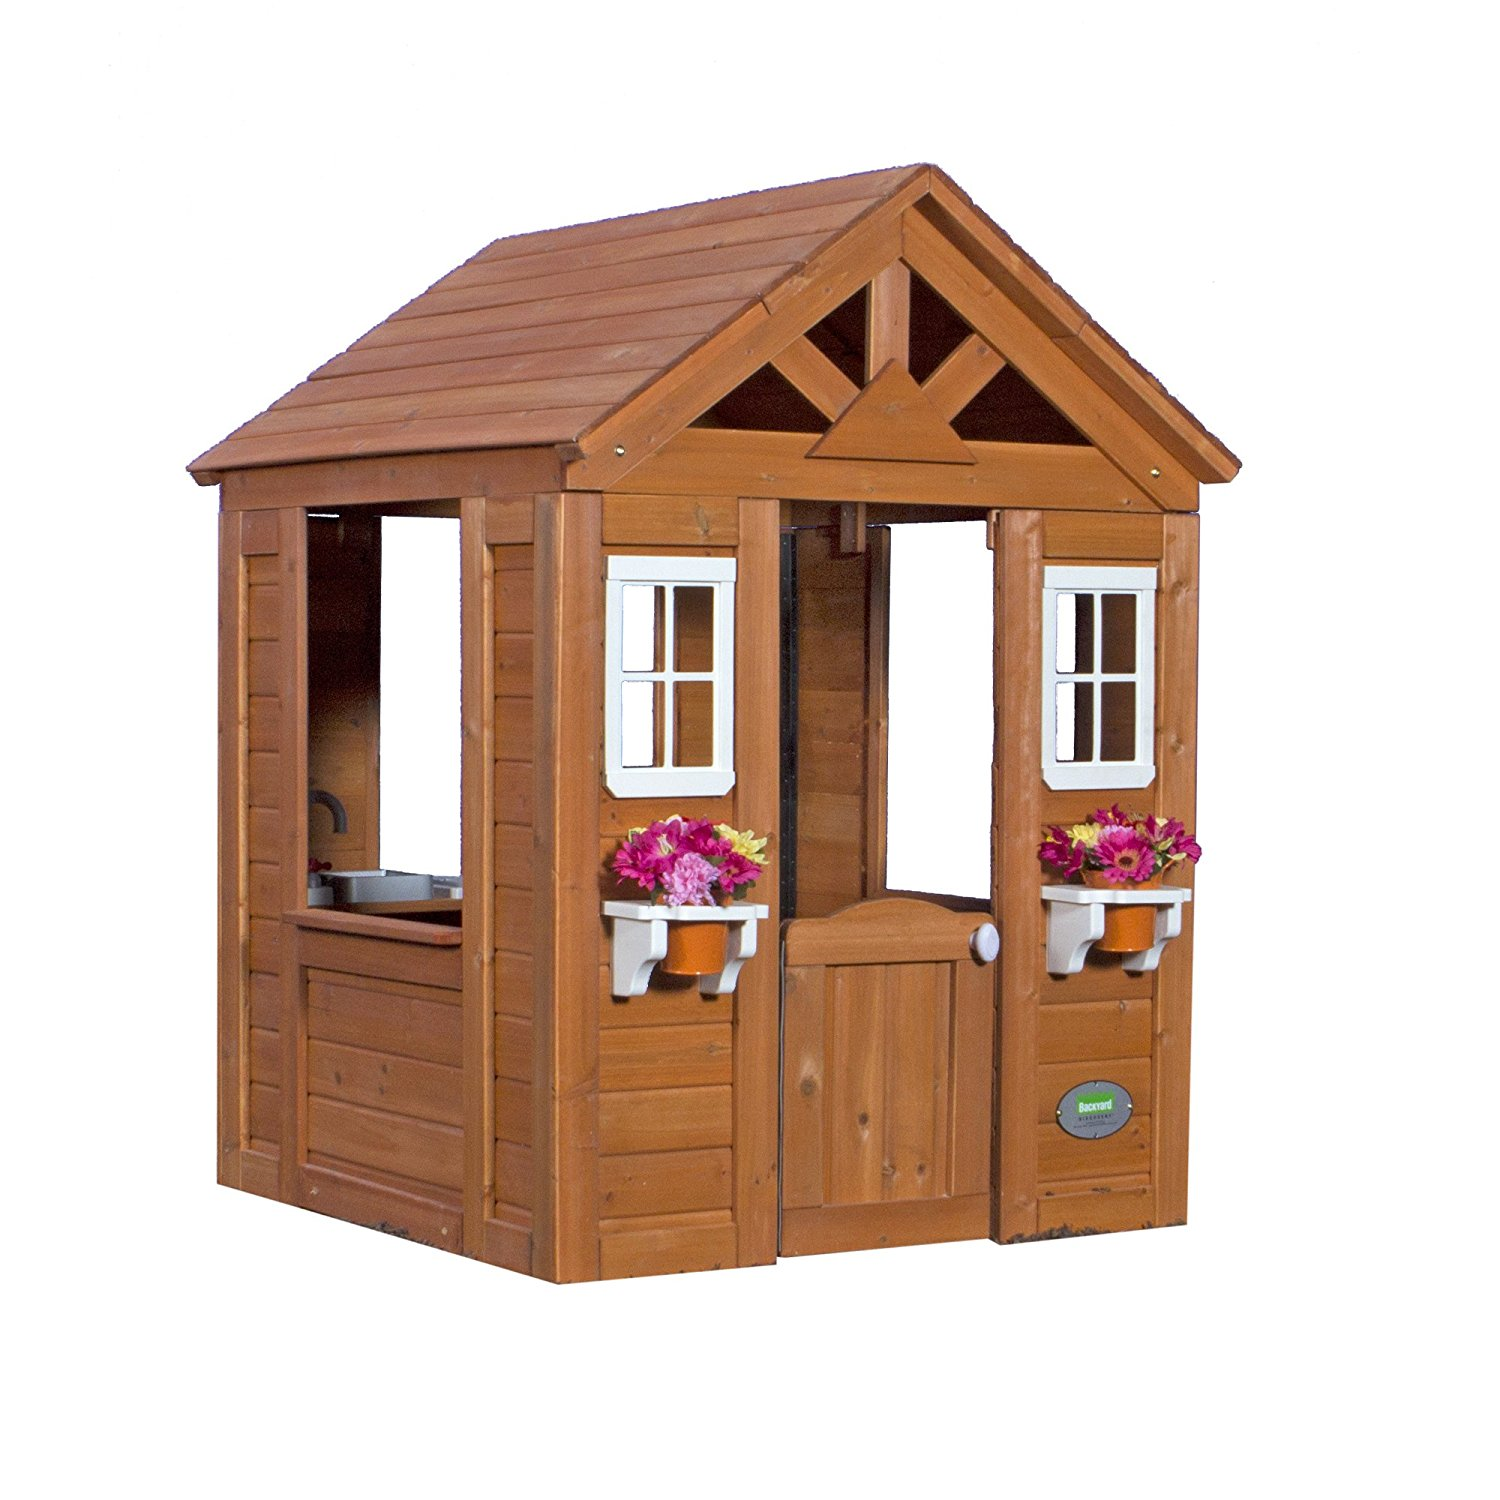 Backyard Discovery Timberlake All Cedar Wood Playhouse with Flower Pot Shelves